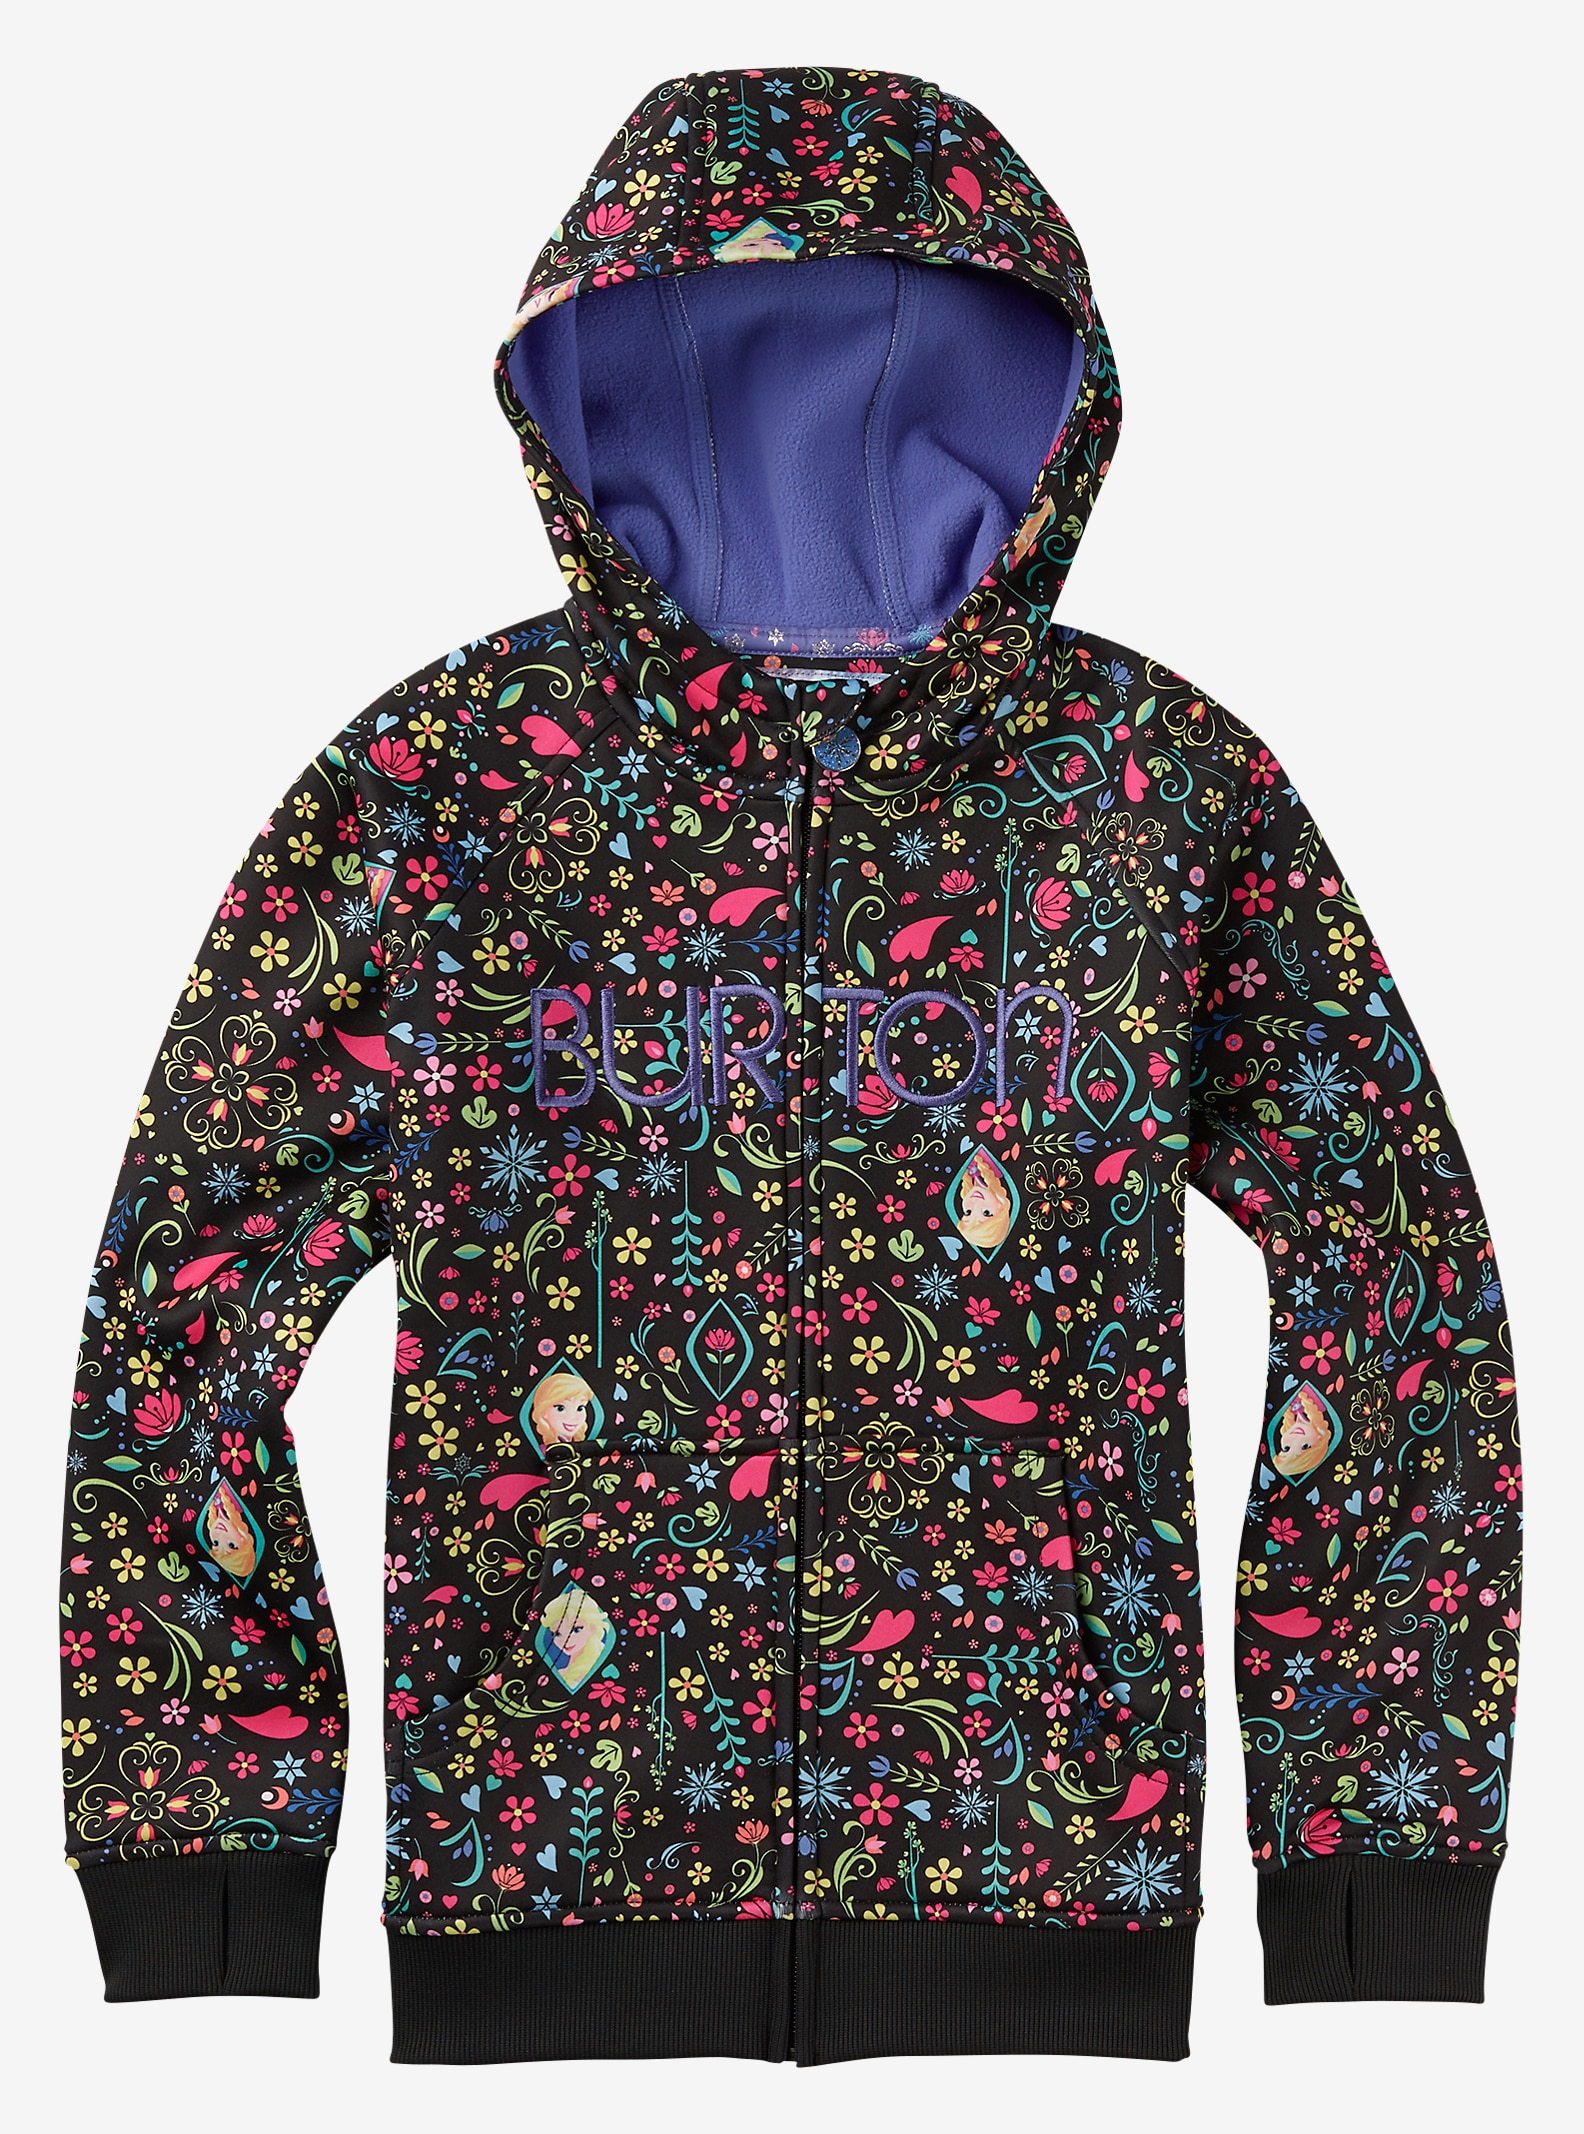 Disney Frozen Girls' Scoop Hoodie shown in Elsa & Anna Frozen Print © Disney